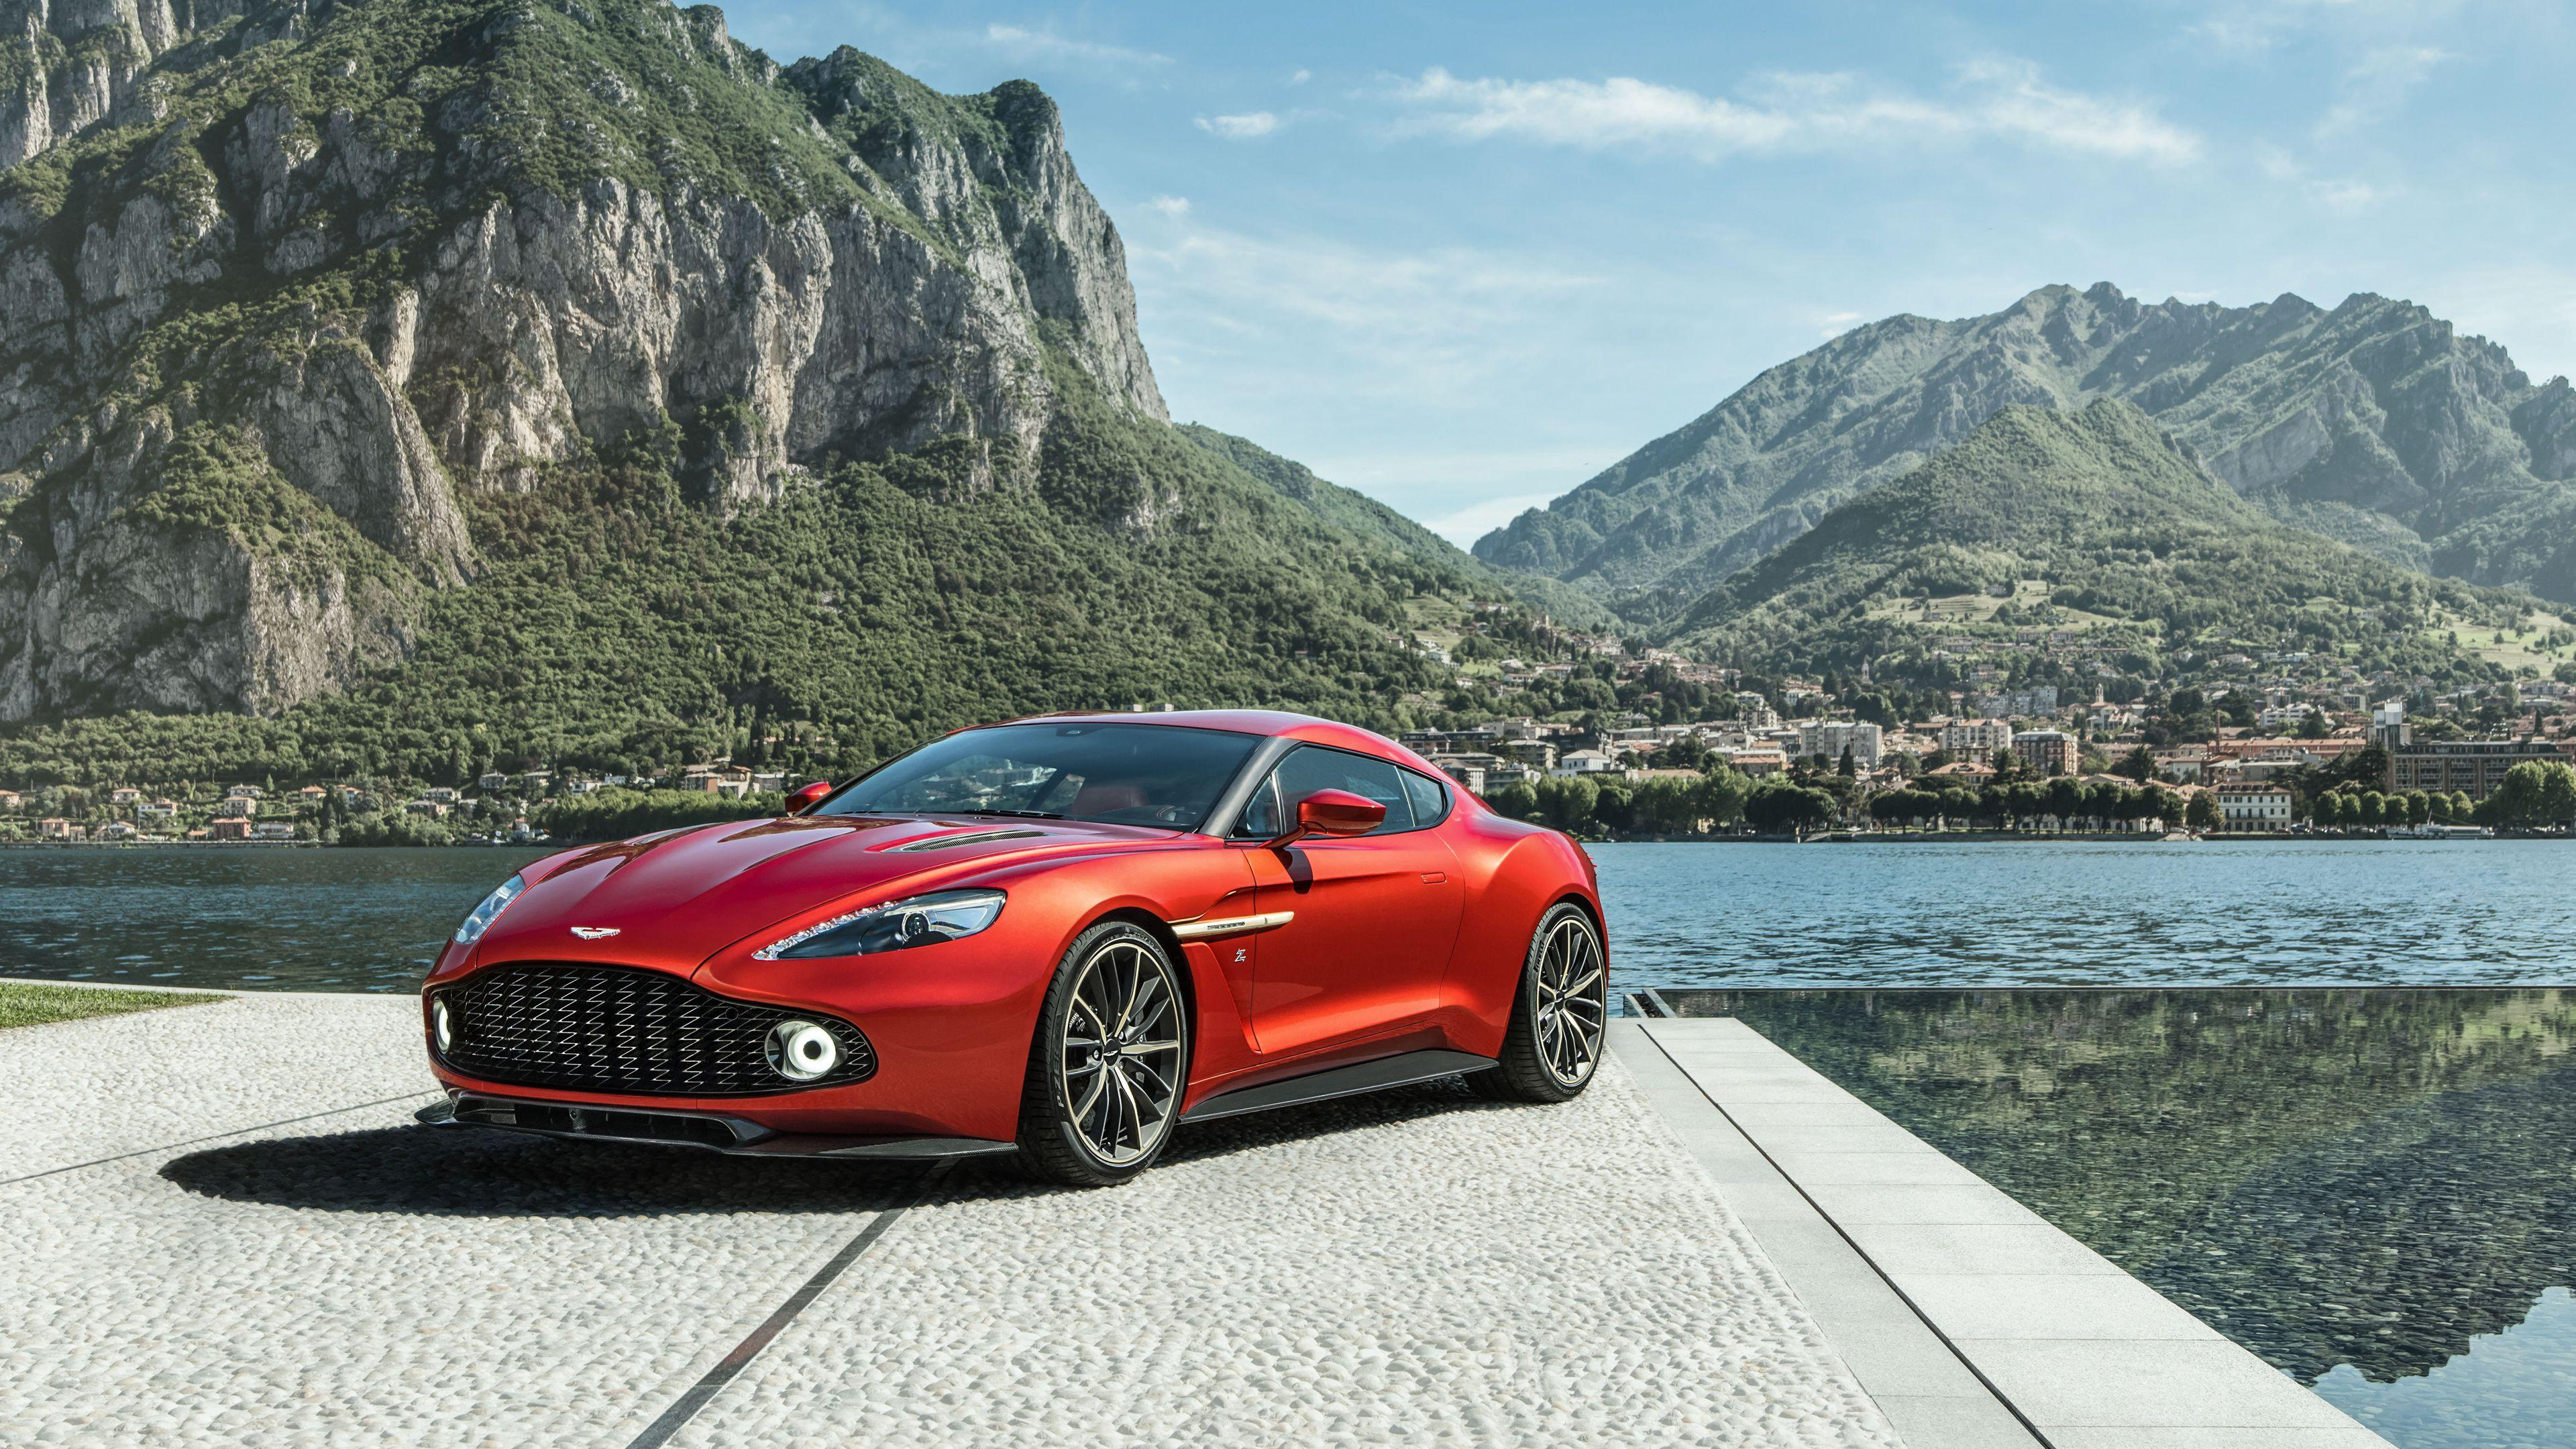 2017 Aston Martin Vanquish Zagato 5 Wallpapers